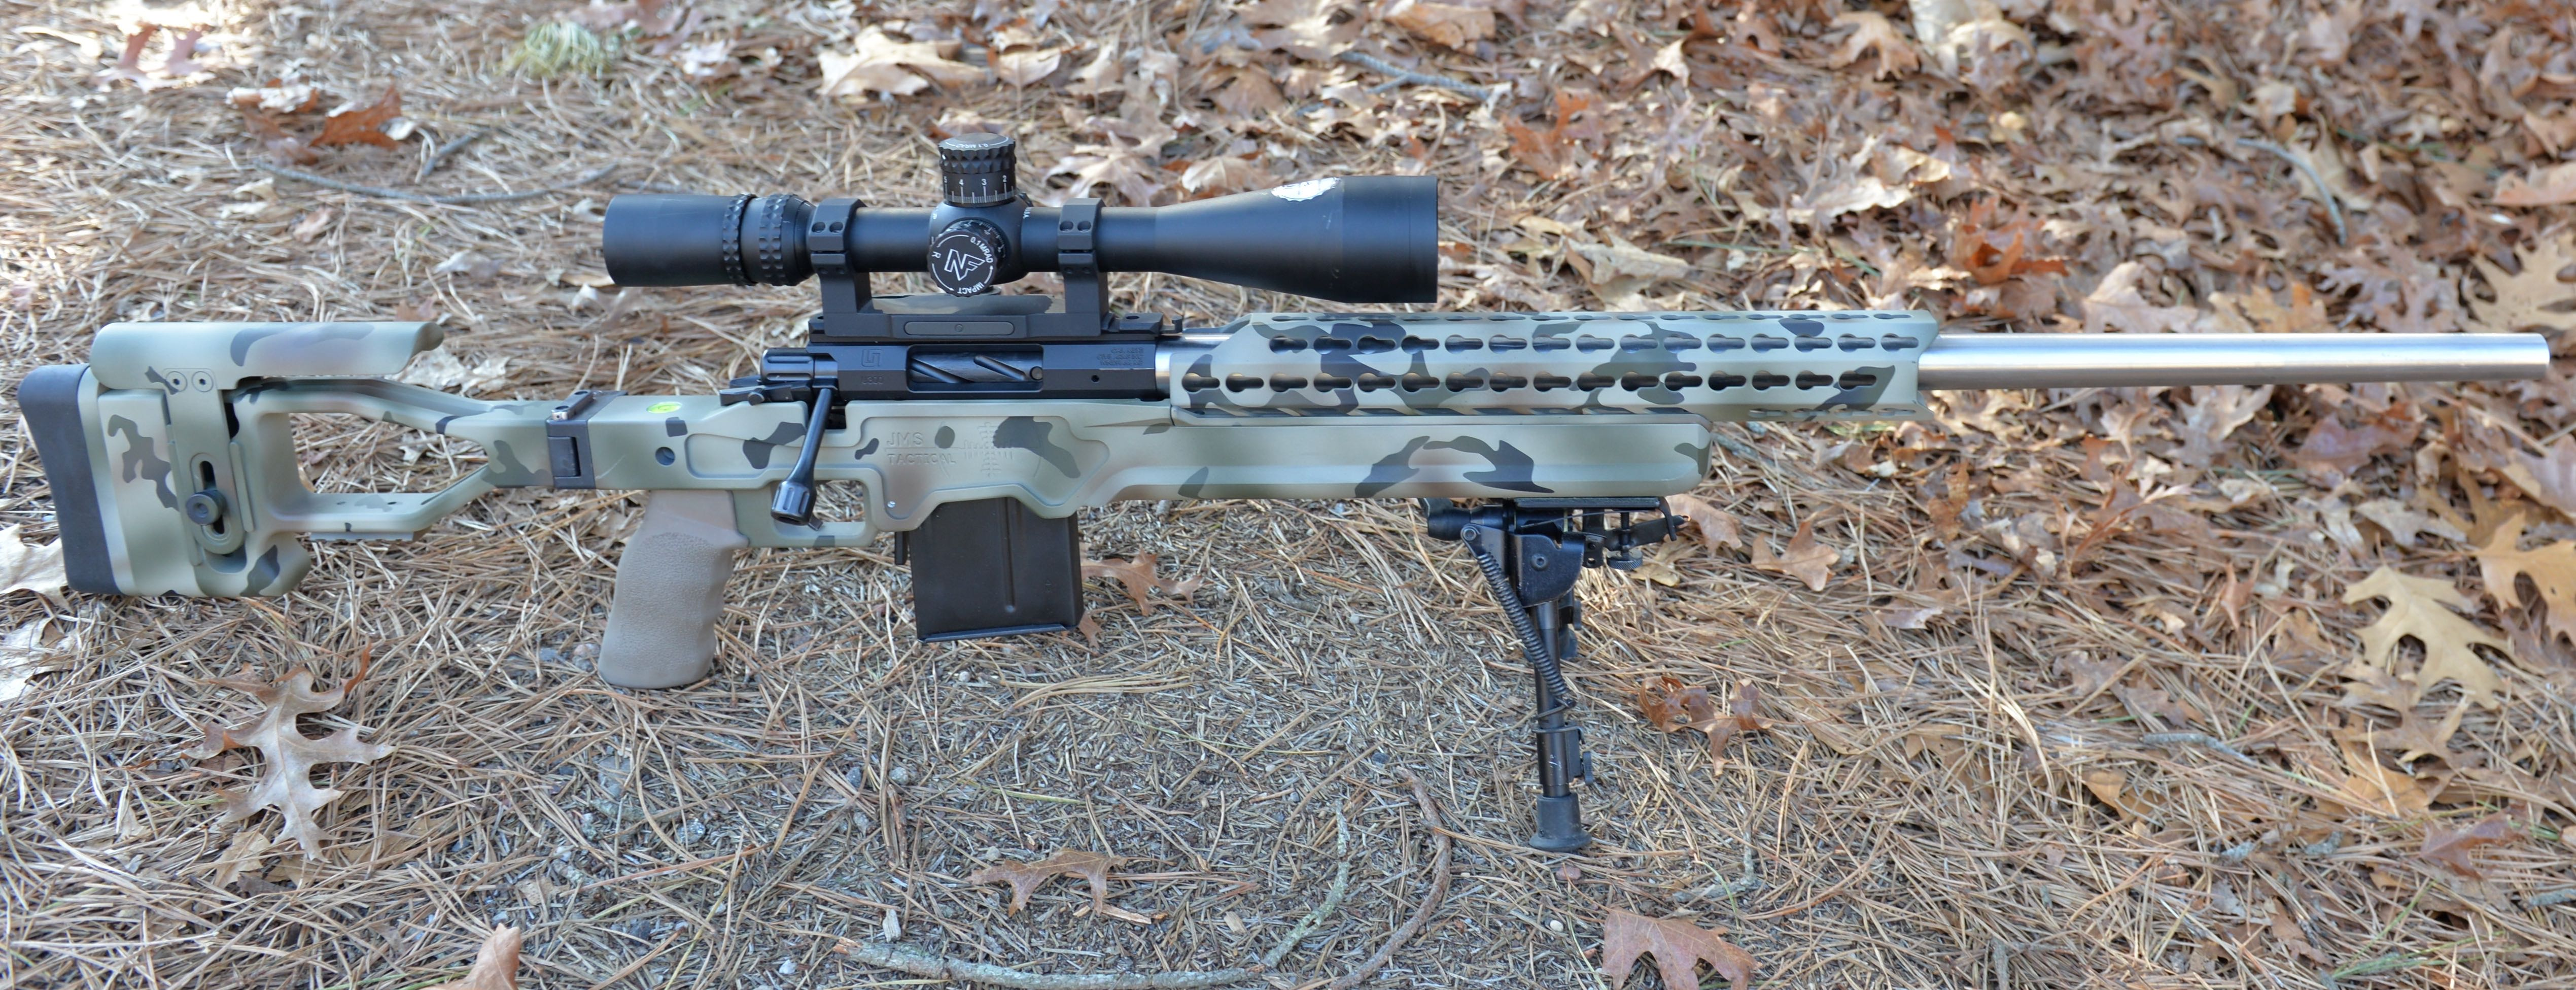 Review: JTAC Thunder Chassis – rifleshooter com